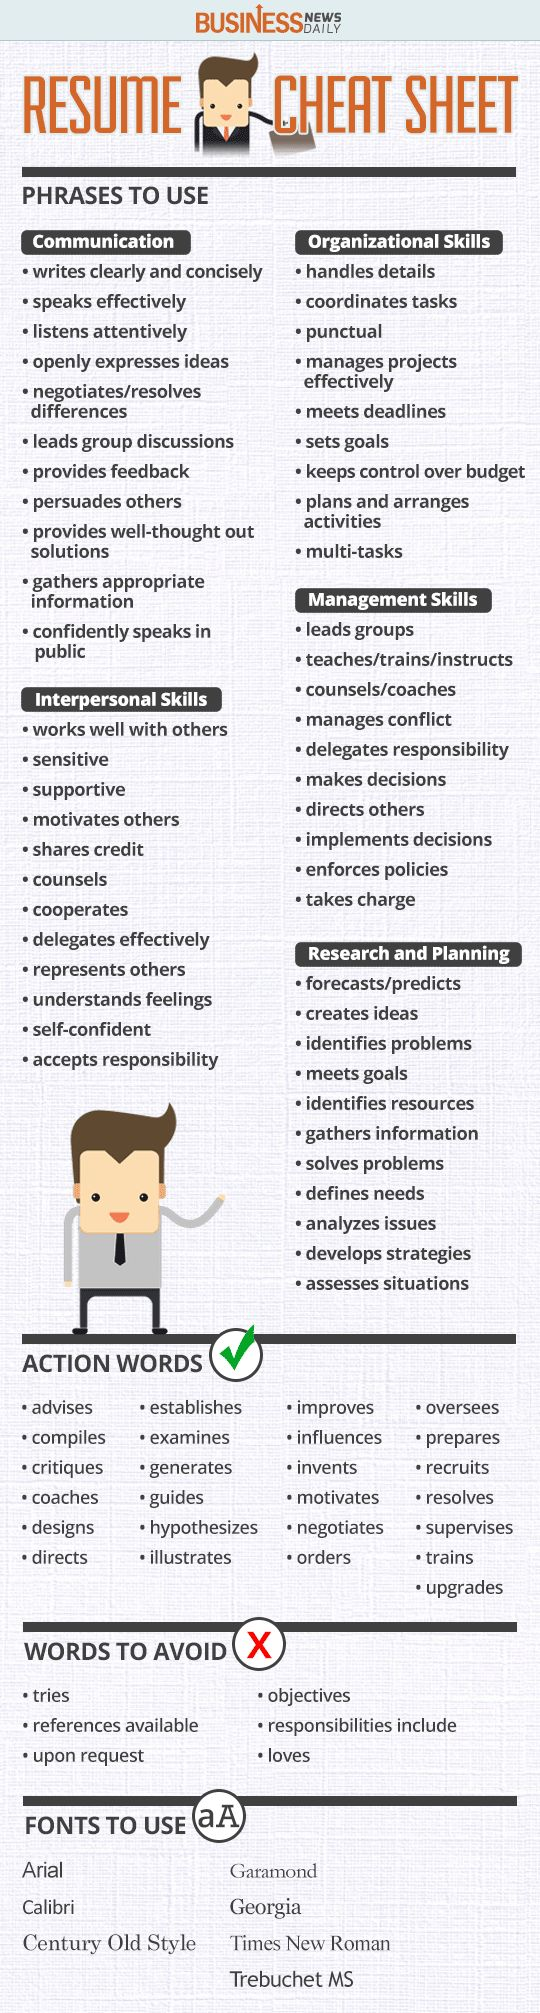 Opposenewapstandardsus  Pleasant  Ideas About Resume On Pinterest  Cv Format Resume Cv And  With Likable Resume Cheat Sheet Infographic Andrews Almost Done With A Complete Unit On Employment Which With Astounding Resume Objective For Sales Associate Also Cleaning Services Resume In Addition Performer Resume And How To Create A Resume Online As Well As Youth Resume Additionally How To Make A Resume In High School From Pinterestcom With Opposenewapstandardsus  Likable  Ideas About Resume On Pinterest  Cv Format Resume Cv And  With Astounding Resume Cheat Sheet Infographic Andrews Almost Done With A Complete Unit On Employment Which And Pleasant Resume Objective For Sales Associate Also Cleaning Services Resume In Addition Performer Resume From Pinterestcom